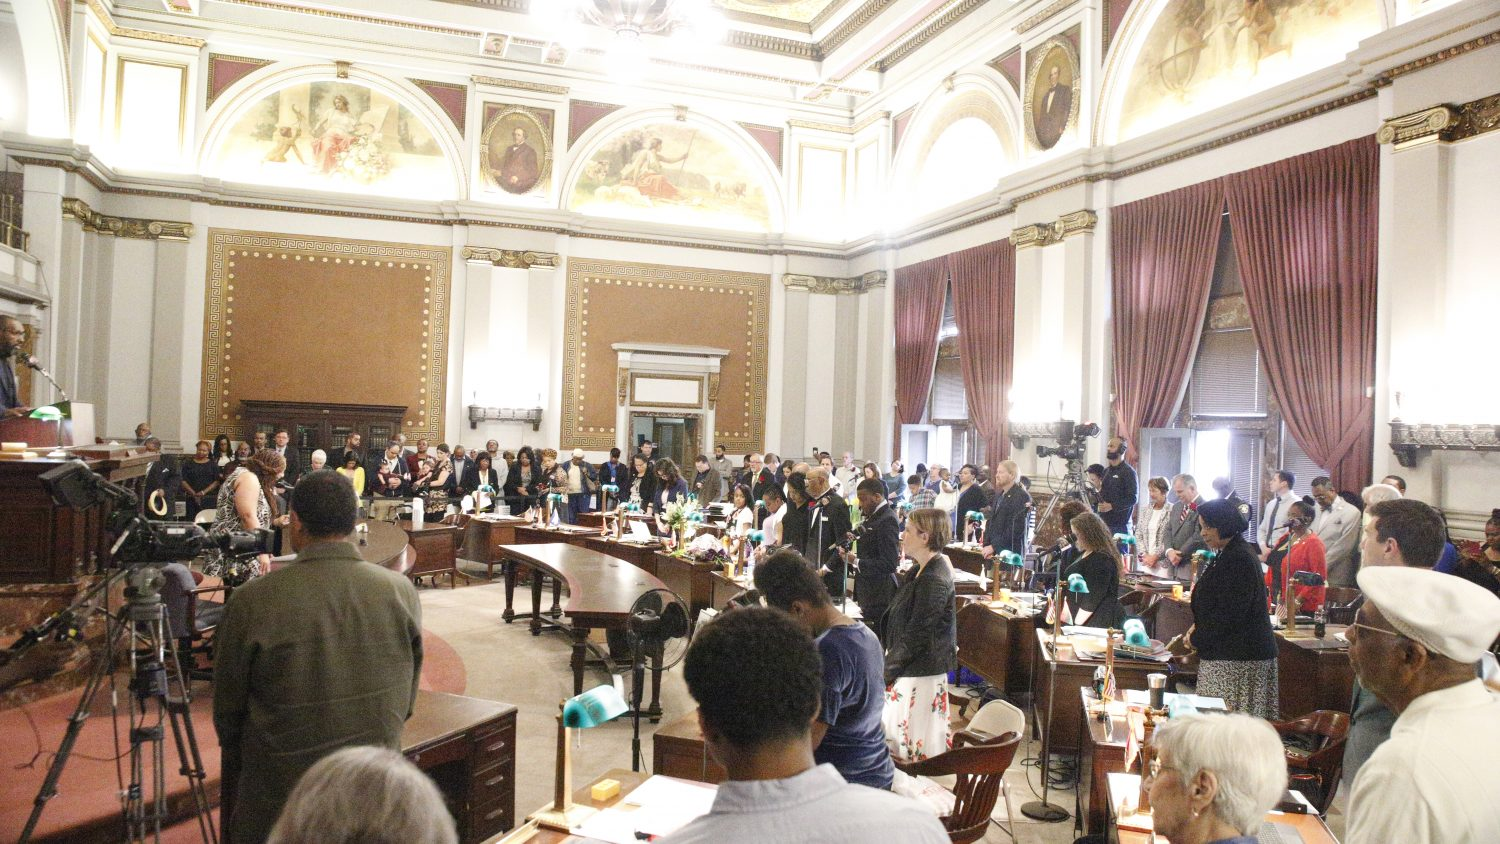 Residency rule election approved in initial vote